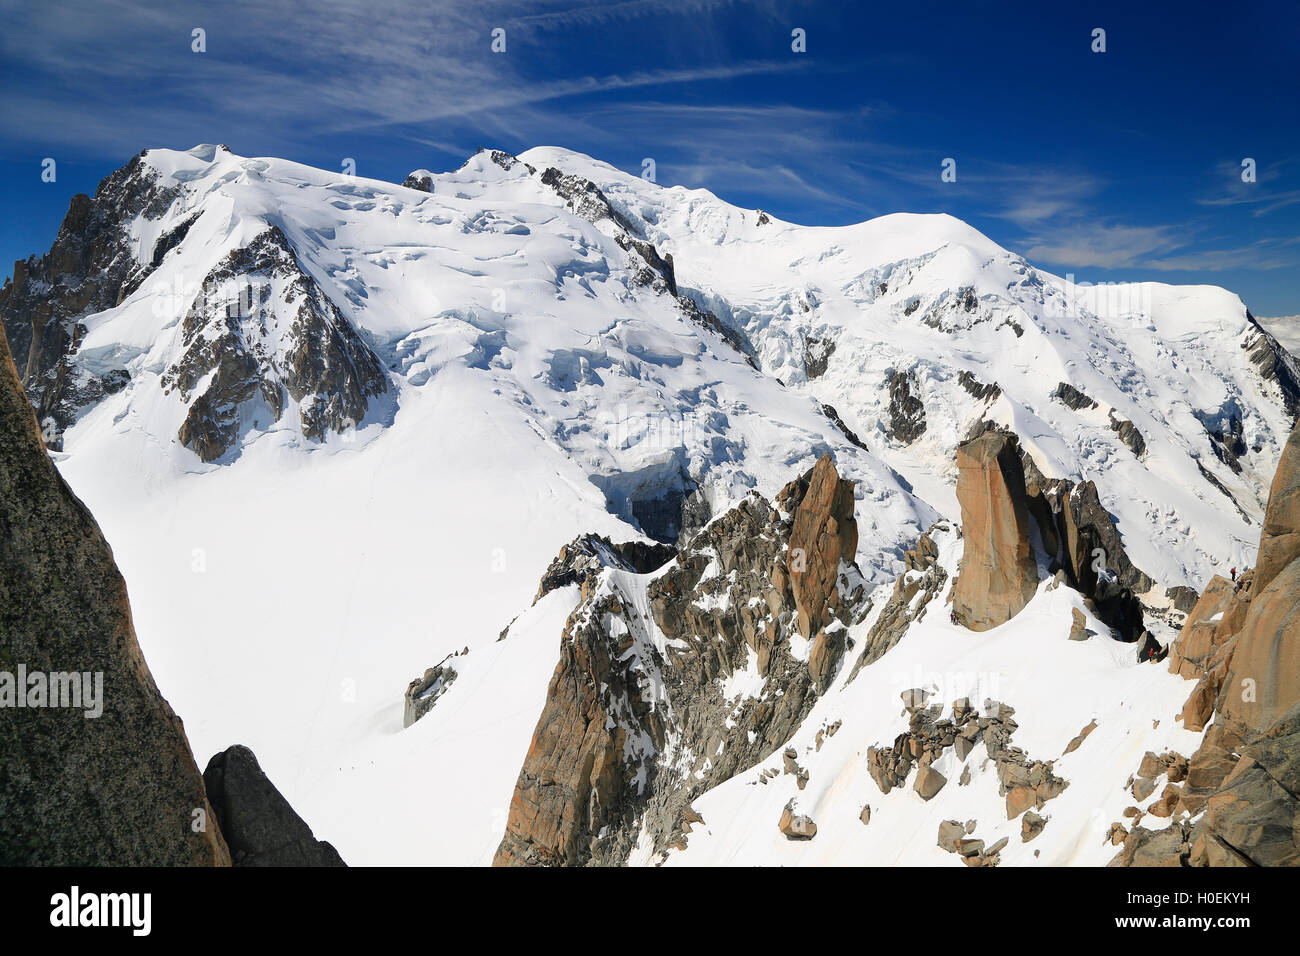 Mont Blanc viewed from Aiguille du Midi, Chamonix, France - Stock Image